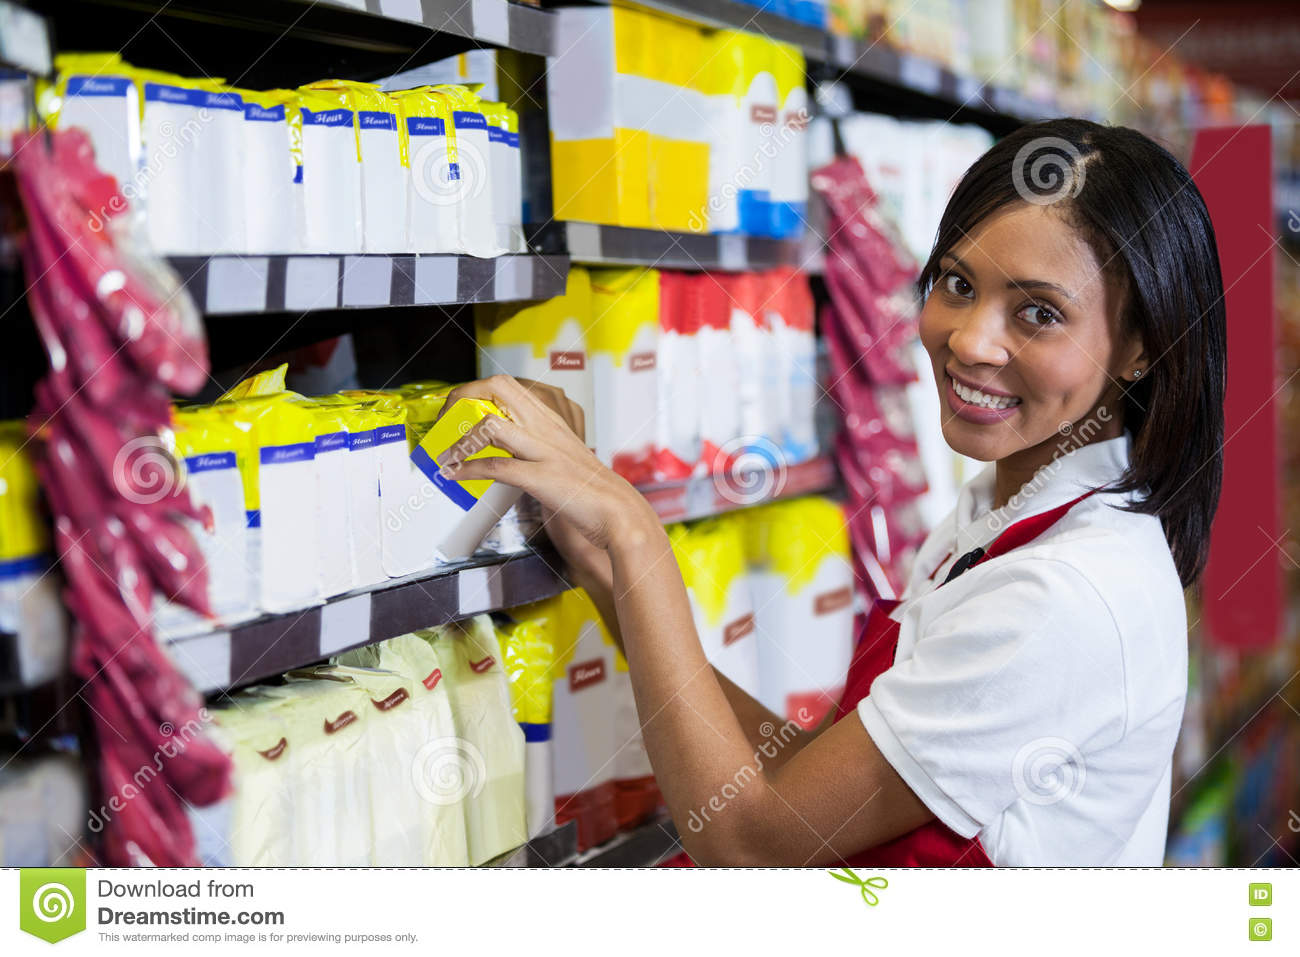 Female staff arranging goods in grocery section